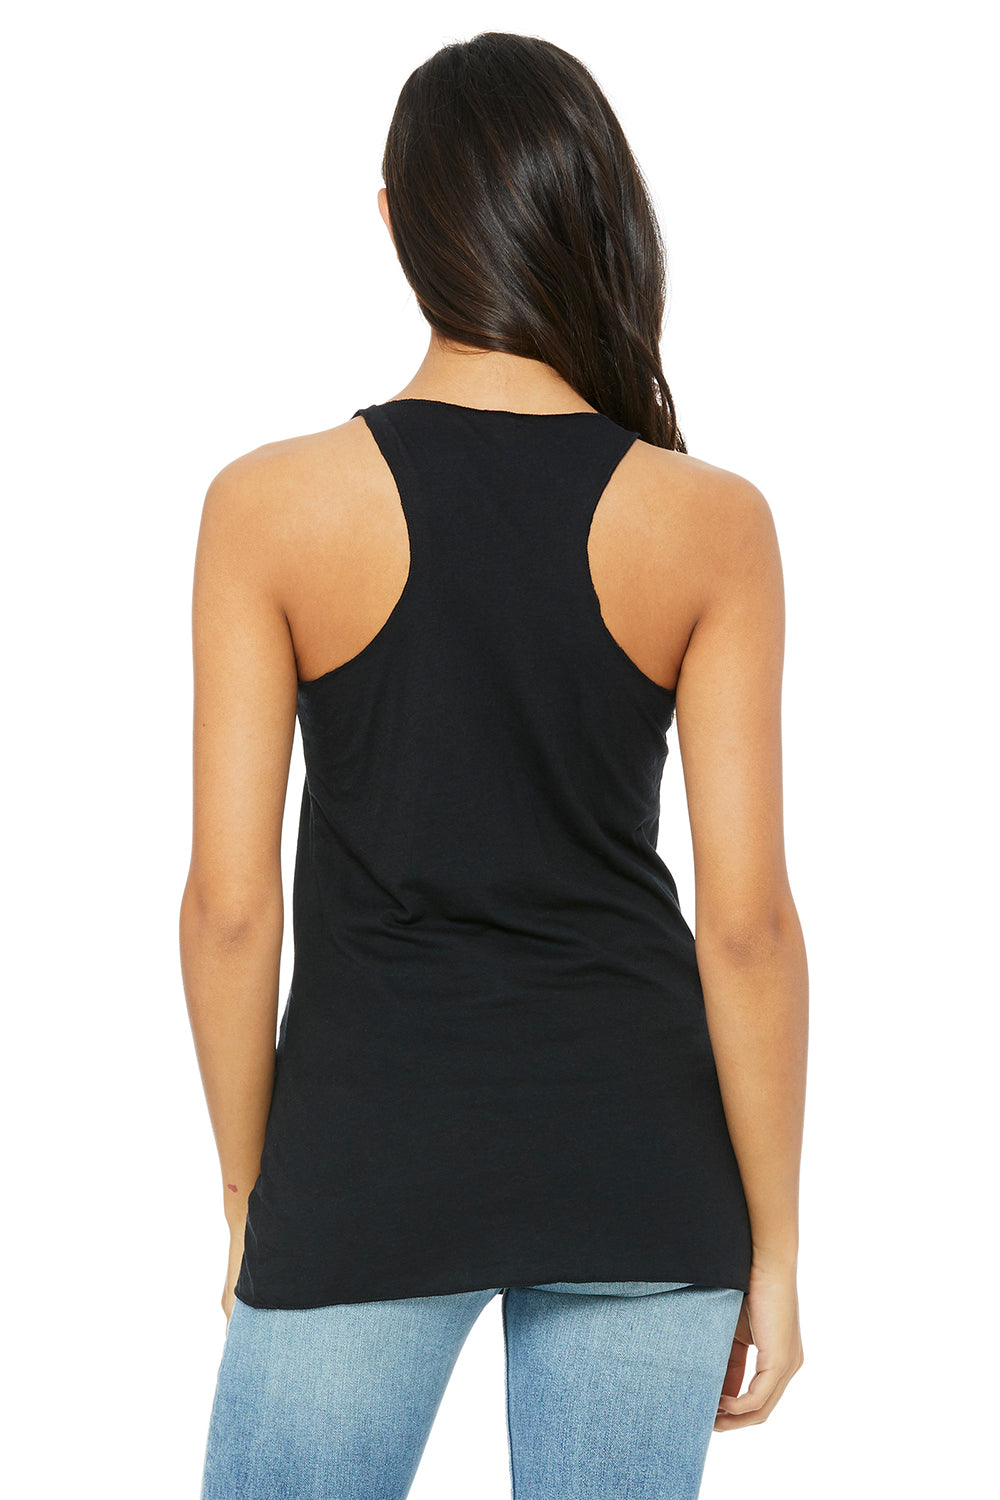 Bella + Canvas 8430 Womens Tank Top Solid Black Back